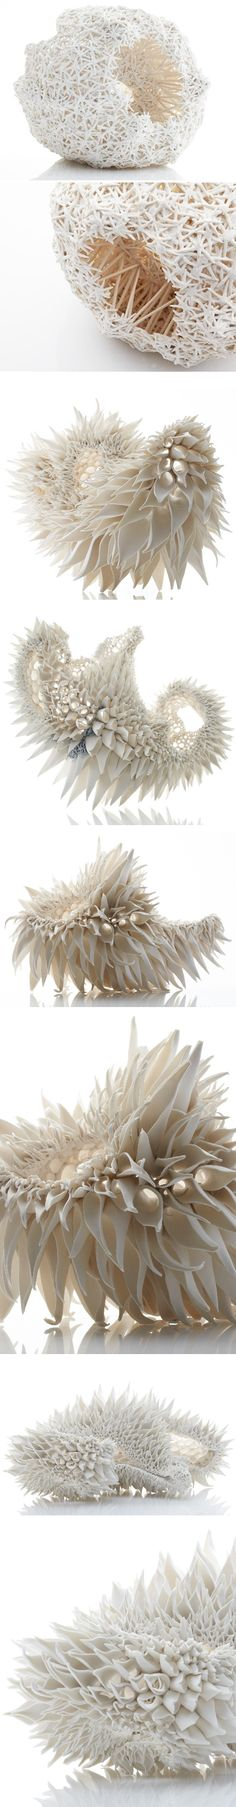 Beautiful, organic ceramic pieces by Nuala O'Donovan, an artist based in Cork, Ireland.